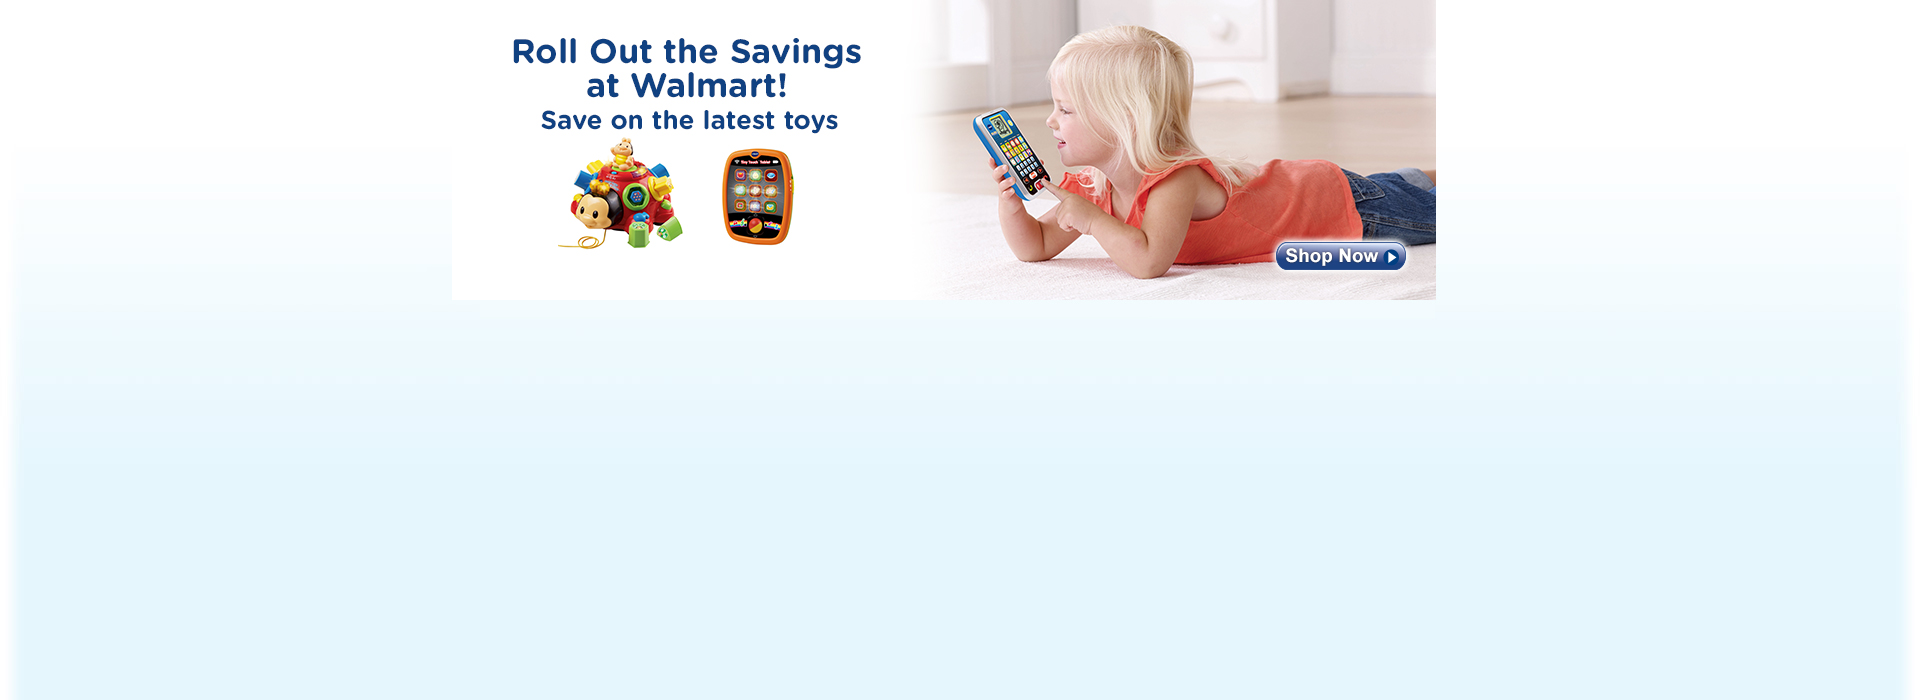 Roll Out the Savings at Walmart Save on the latest toys